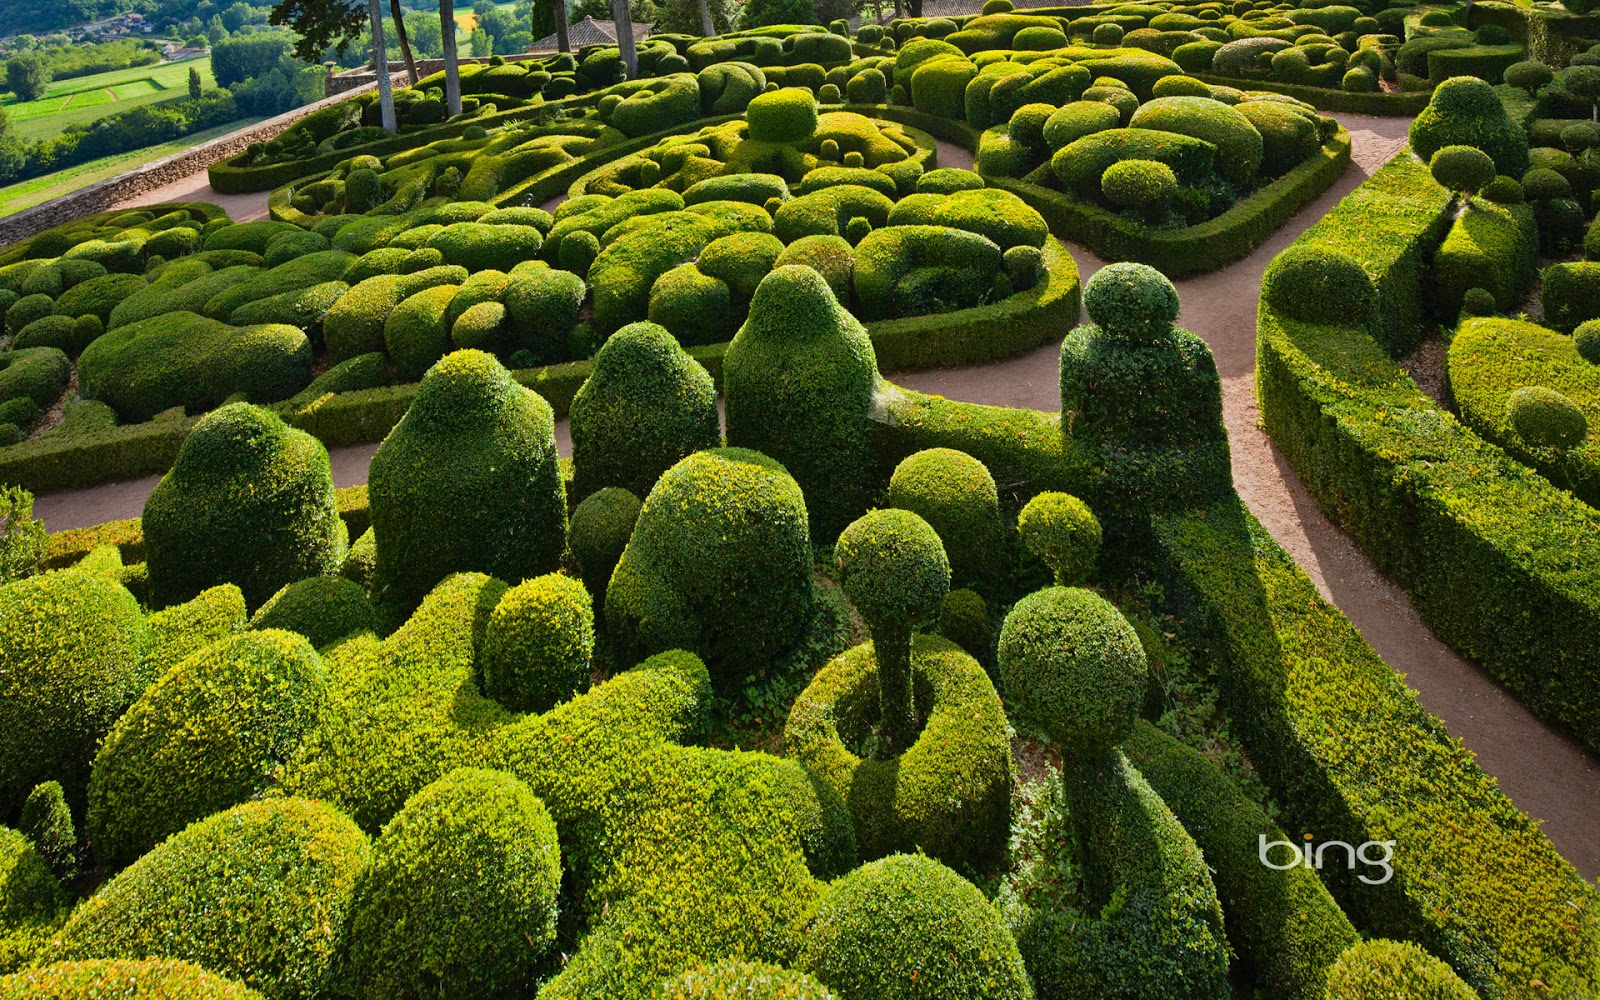 Sculpted boxwoods at the Chateau de Marqueyssac in Vzac France 1600x1000